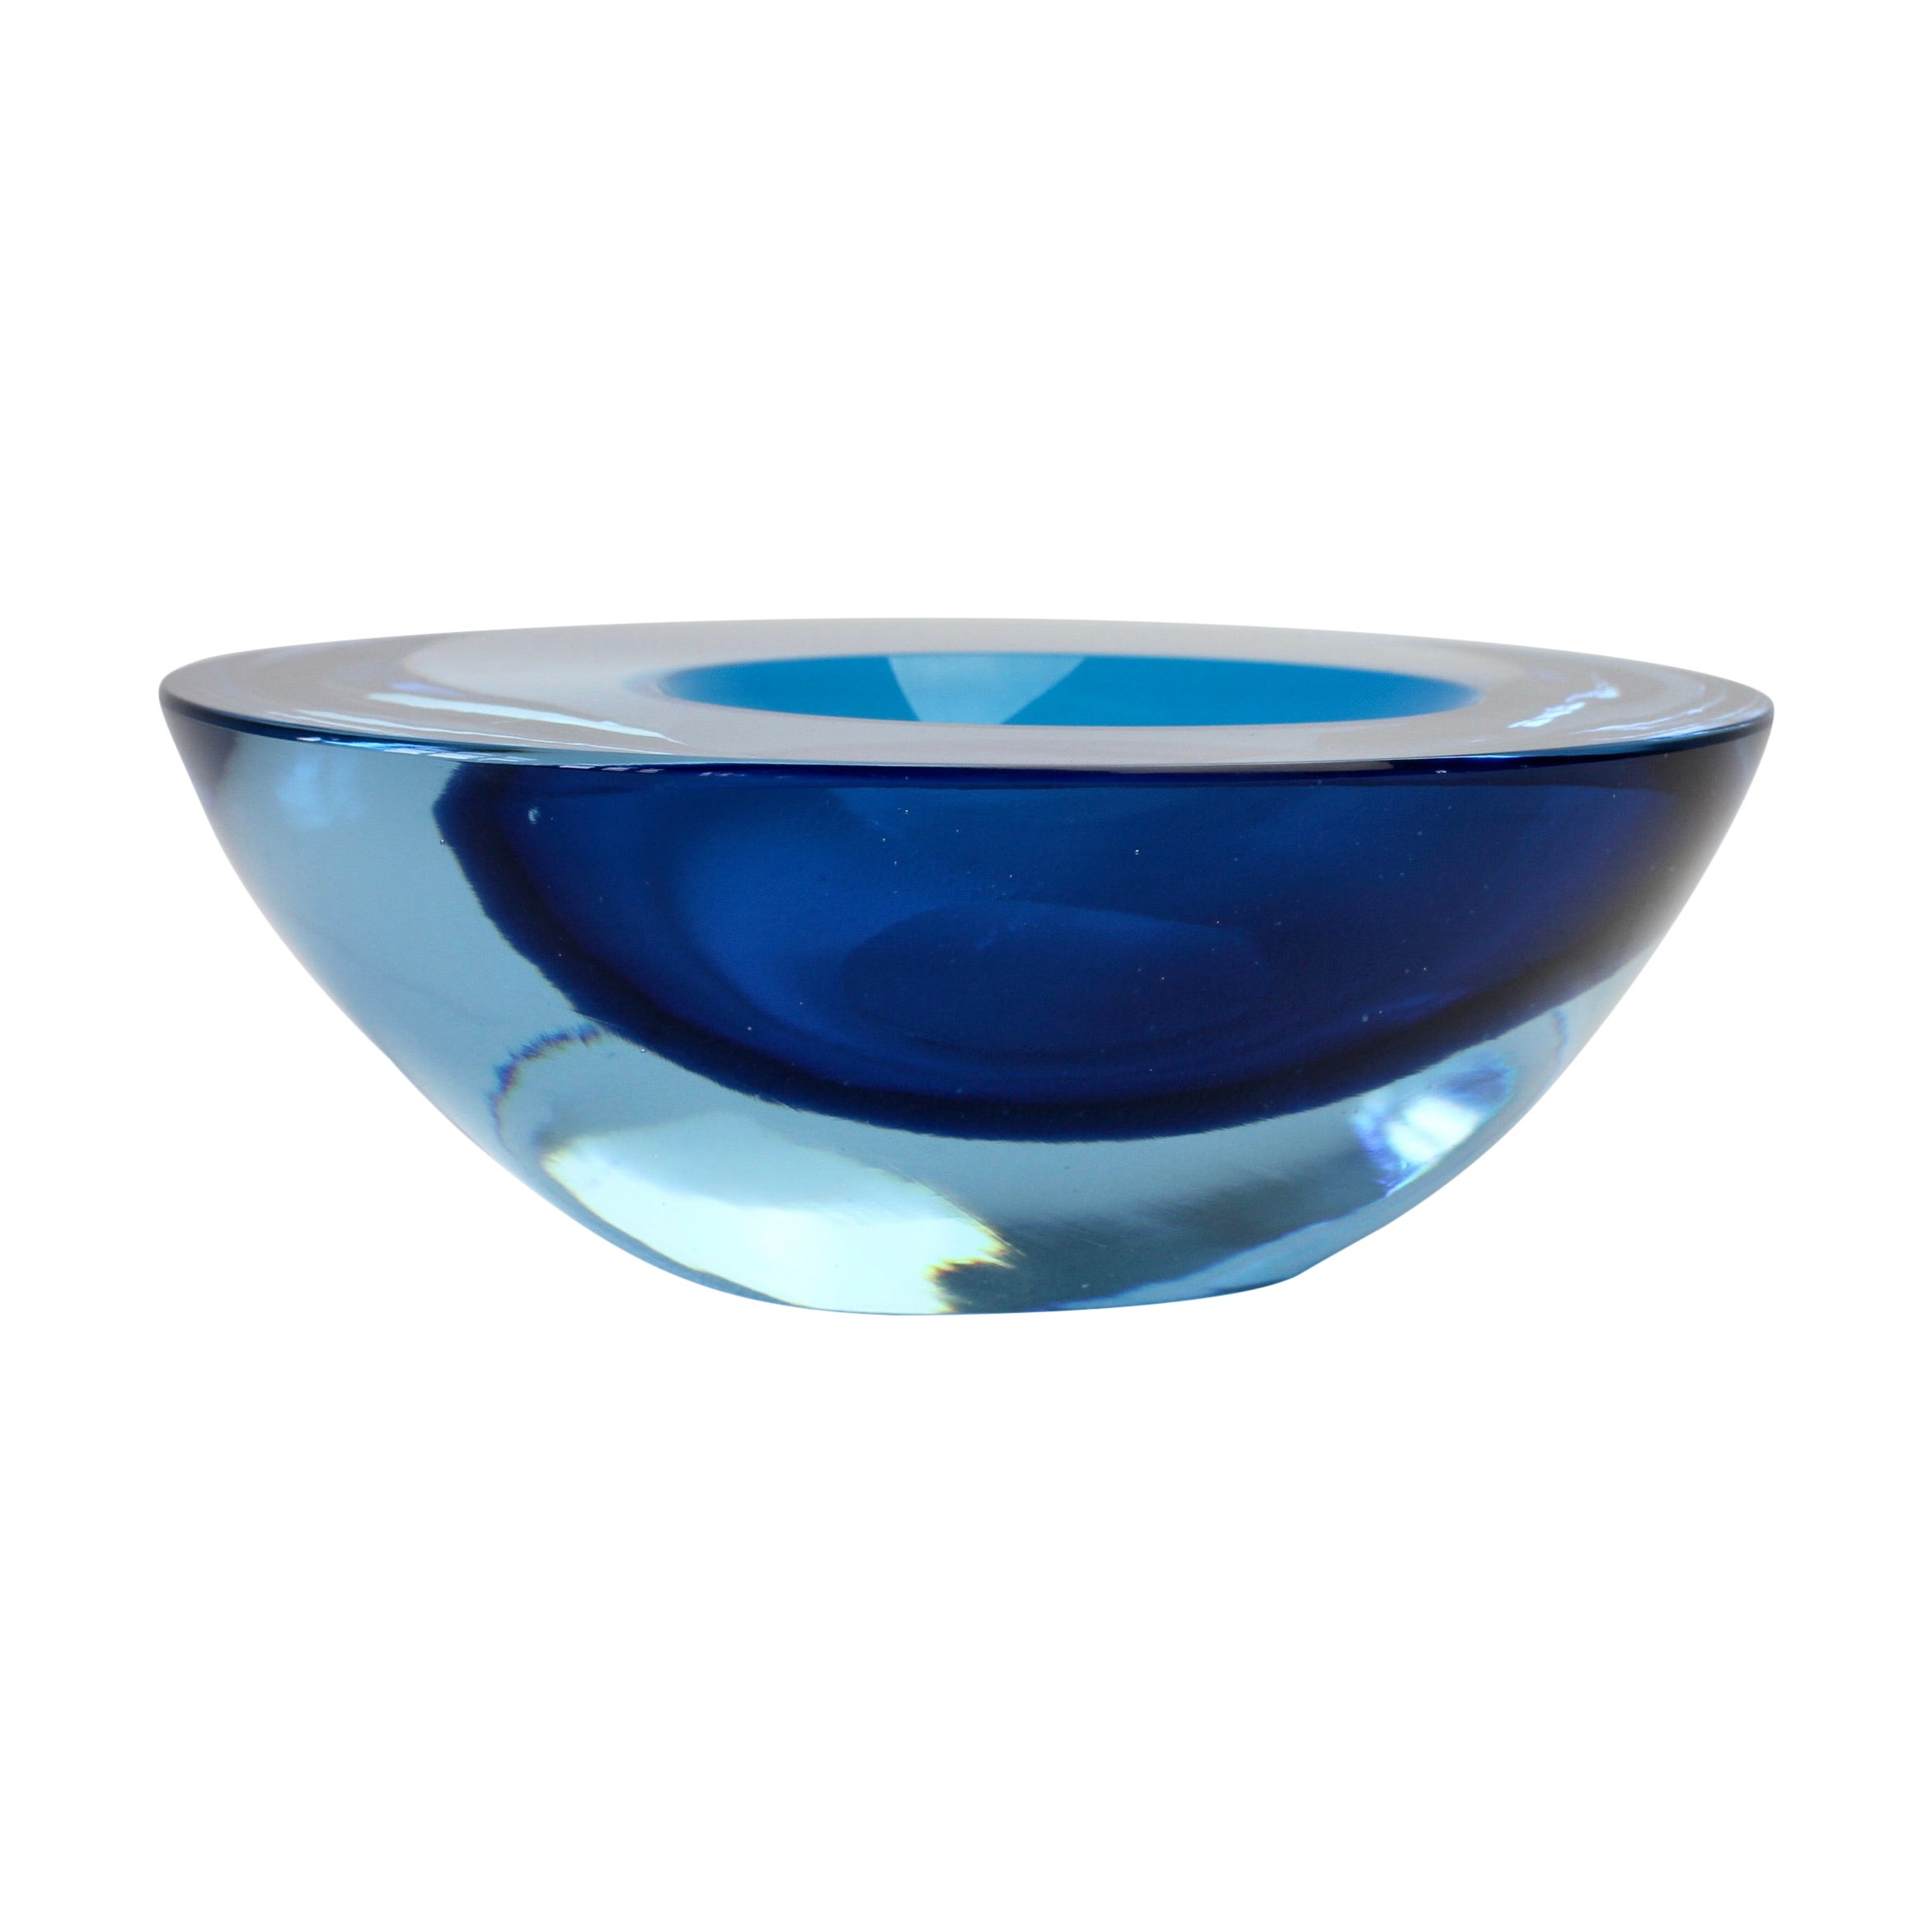 Large Cenedese Italian Asymmetric Blue Sommerso Murano Glass Bowl, Dish, Ashtray